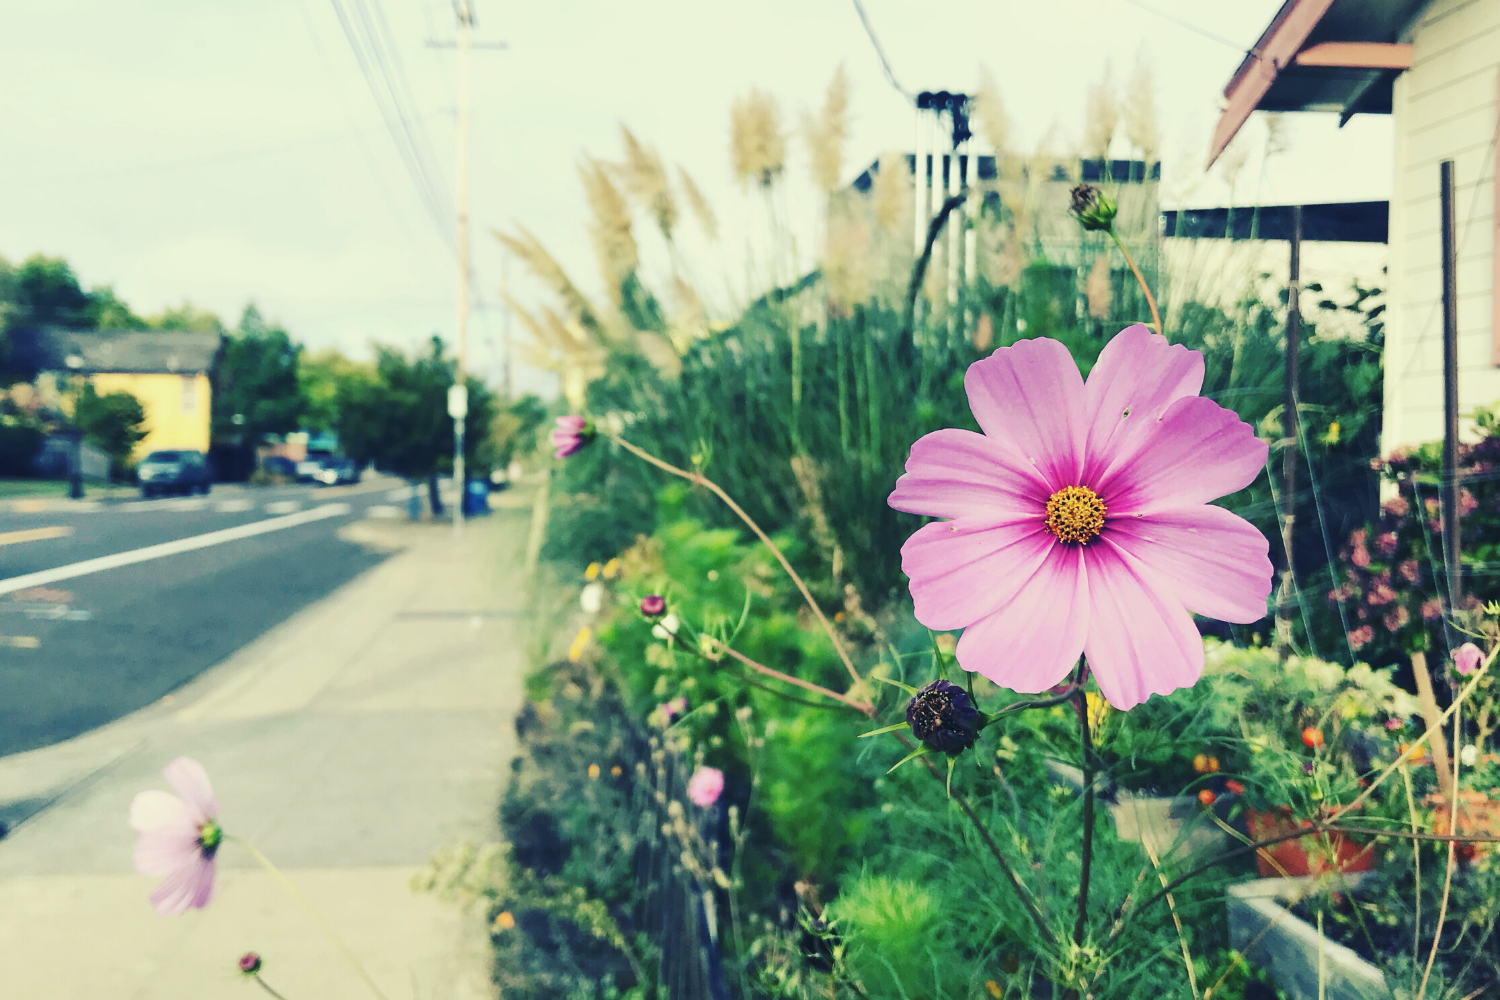 A pink flower in the foreground followed by a blurry view down a sidewalk